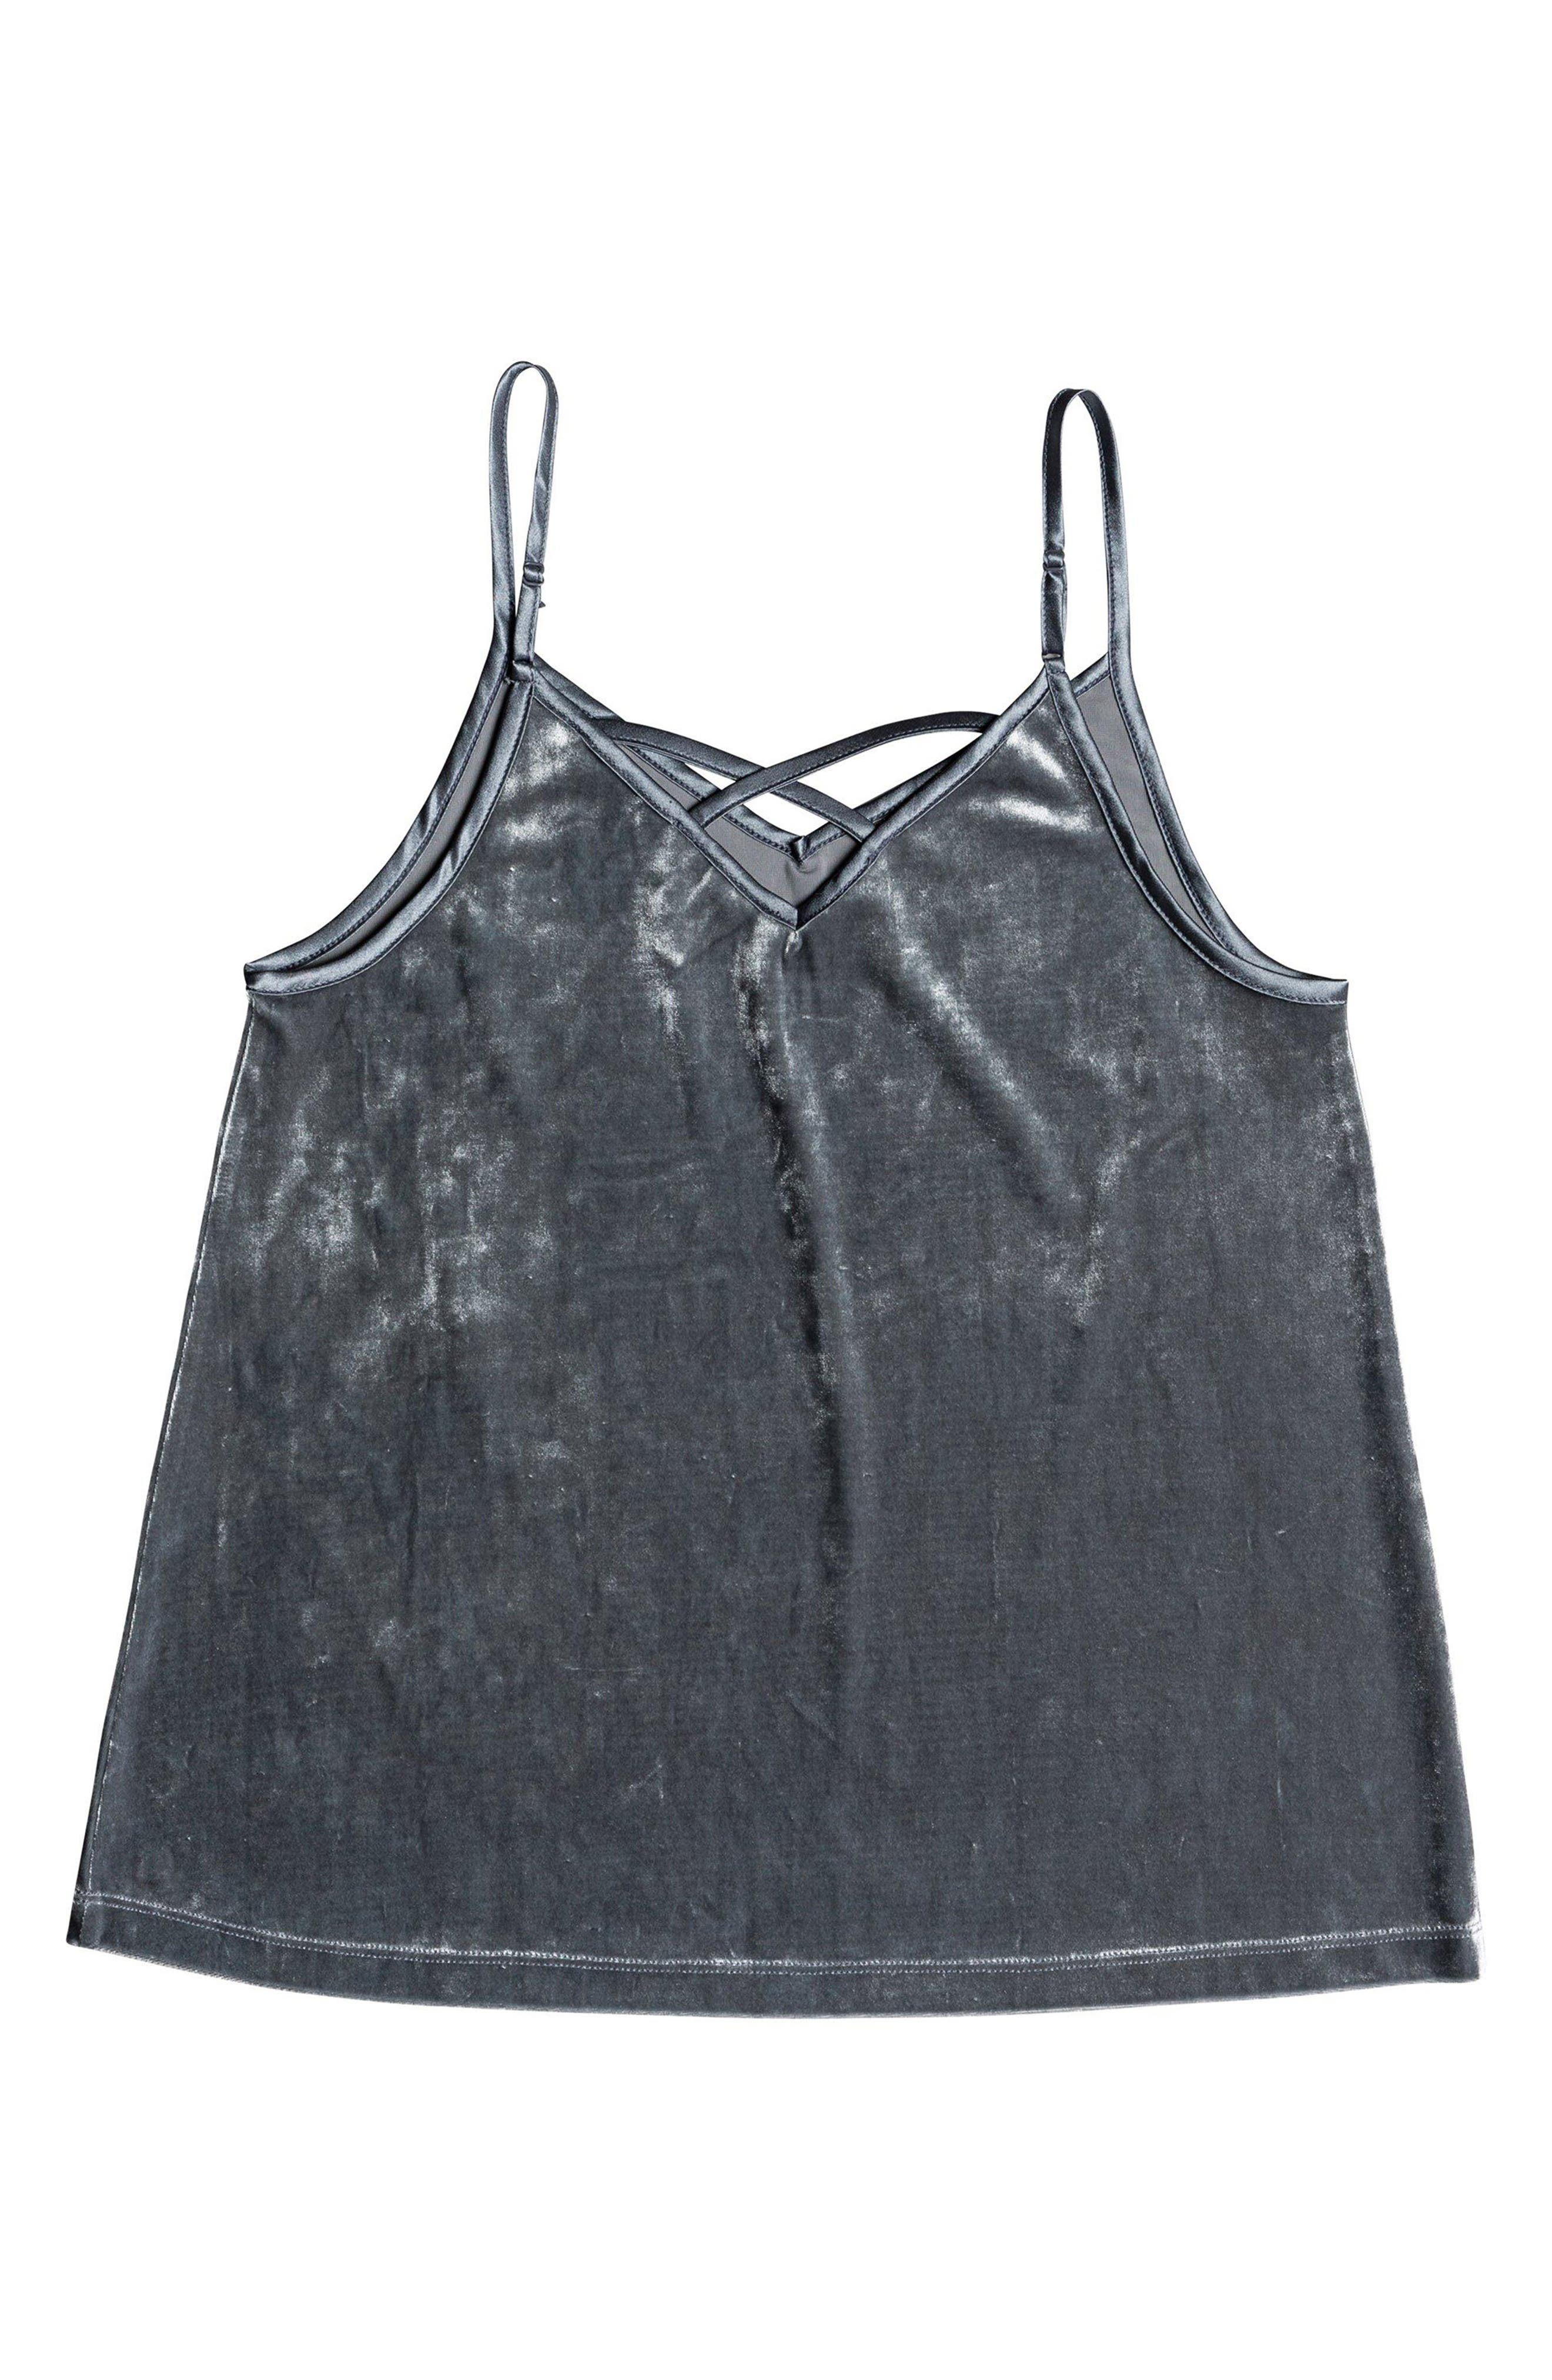 ROXY,                             You Are Pretty Velvet Camisole,                             Alternate thumbnail 5, color,                             TURBULENCE